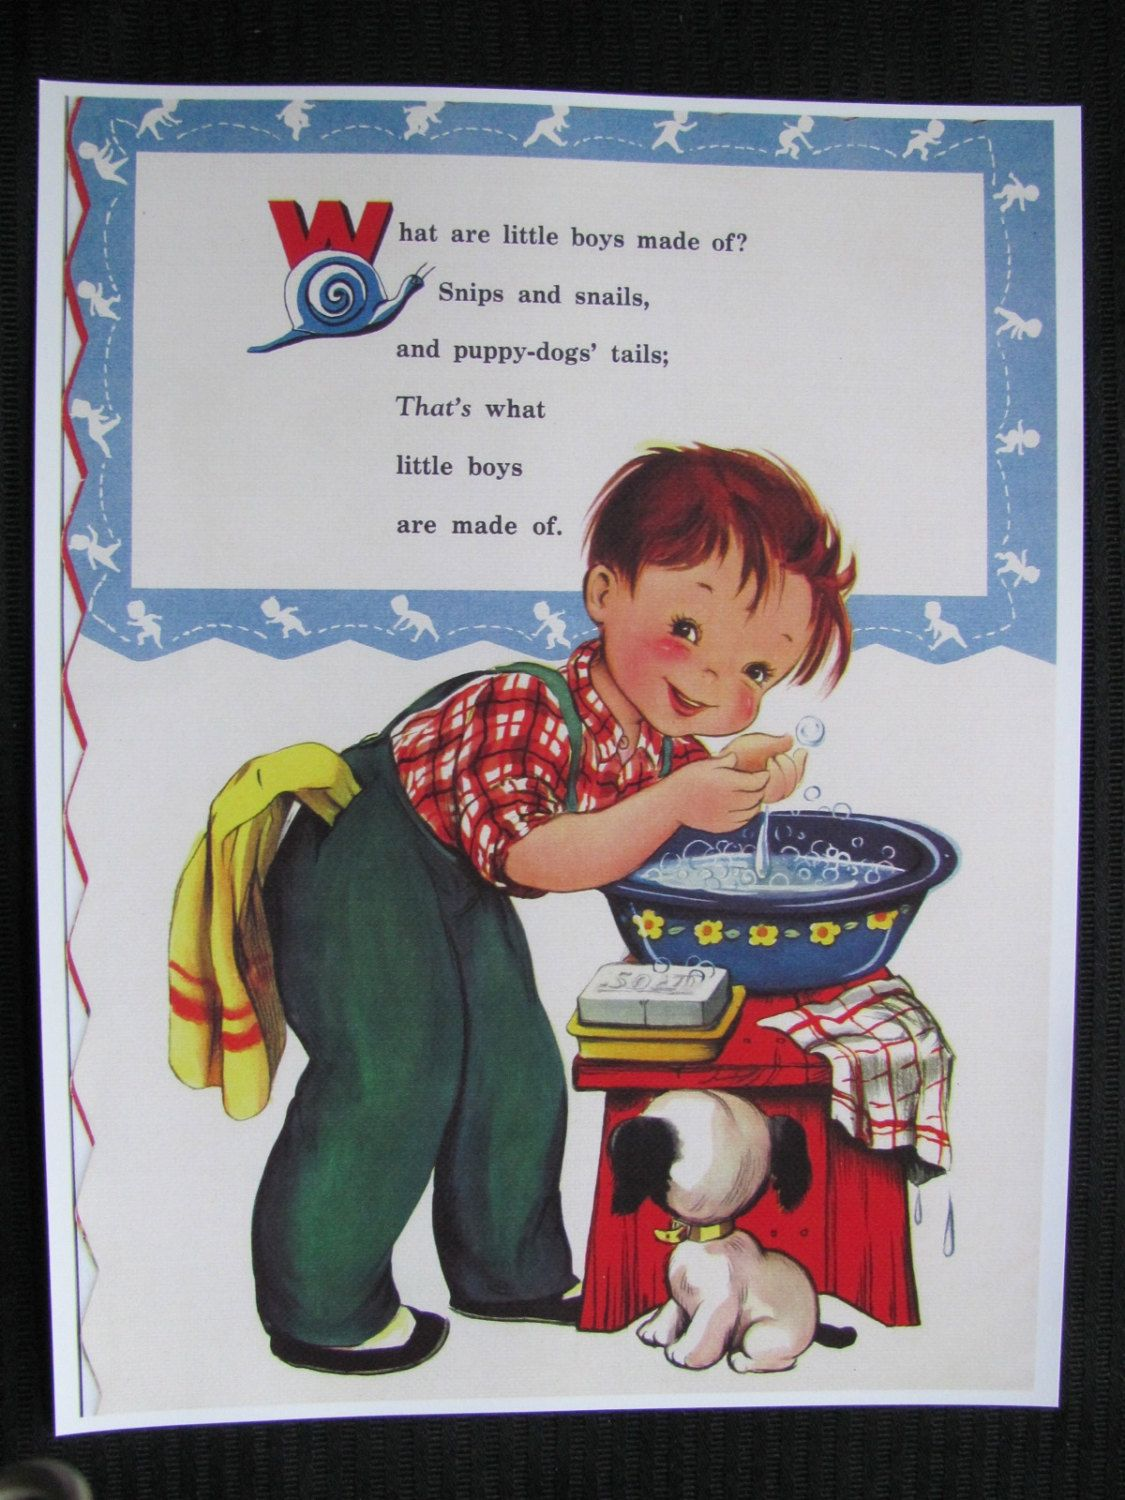 Childrens Ilrated Nursery Rhyme What Are Little Boys Made Of